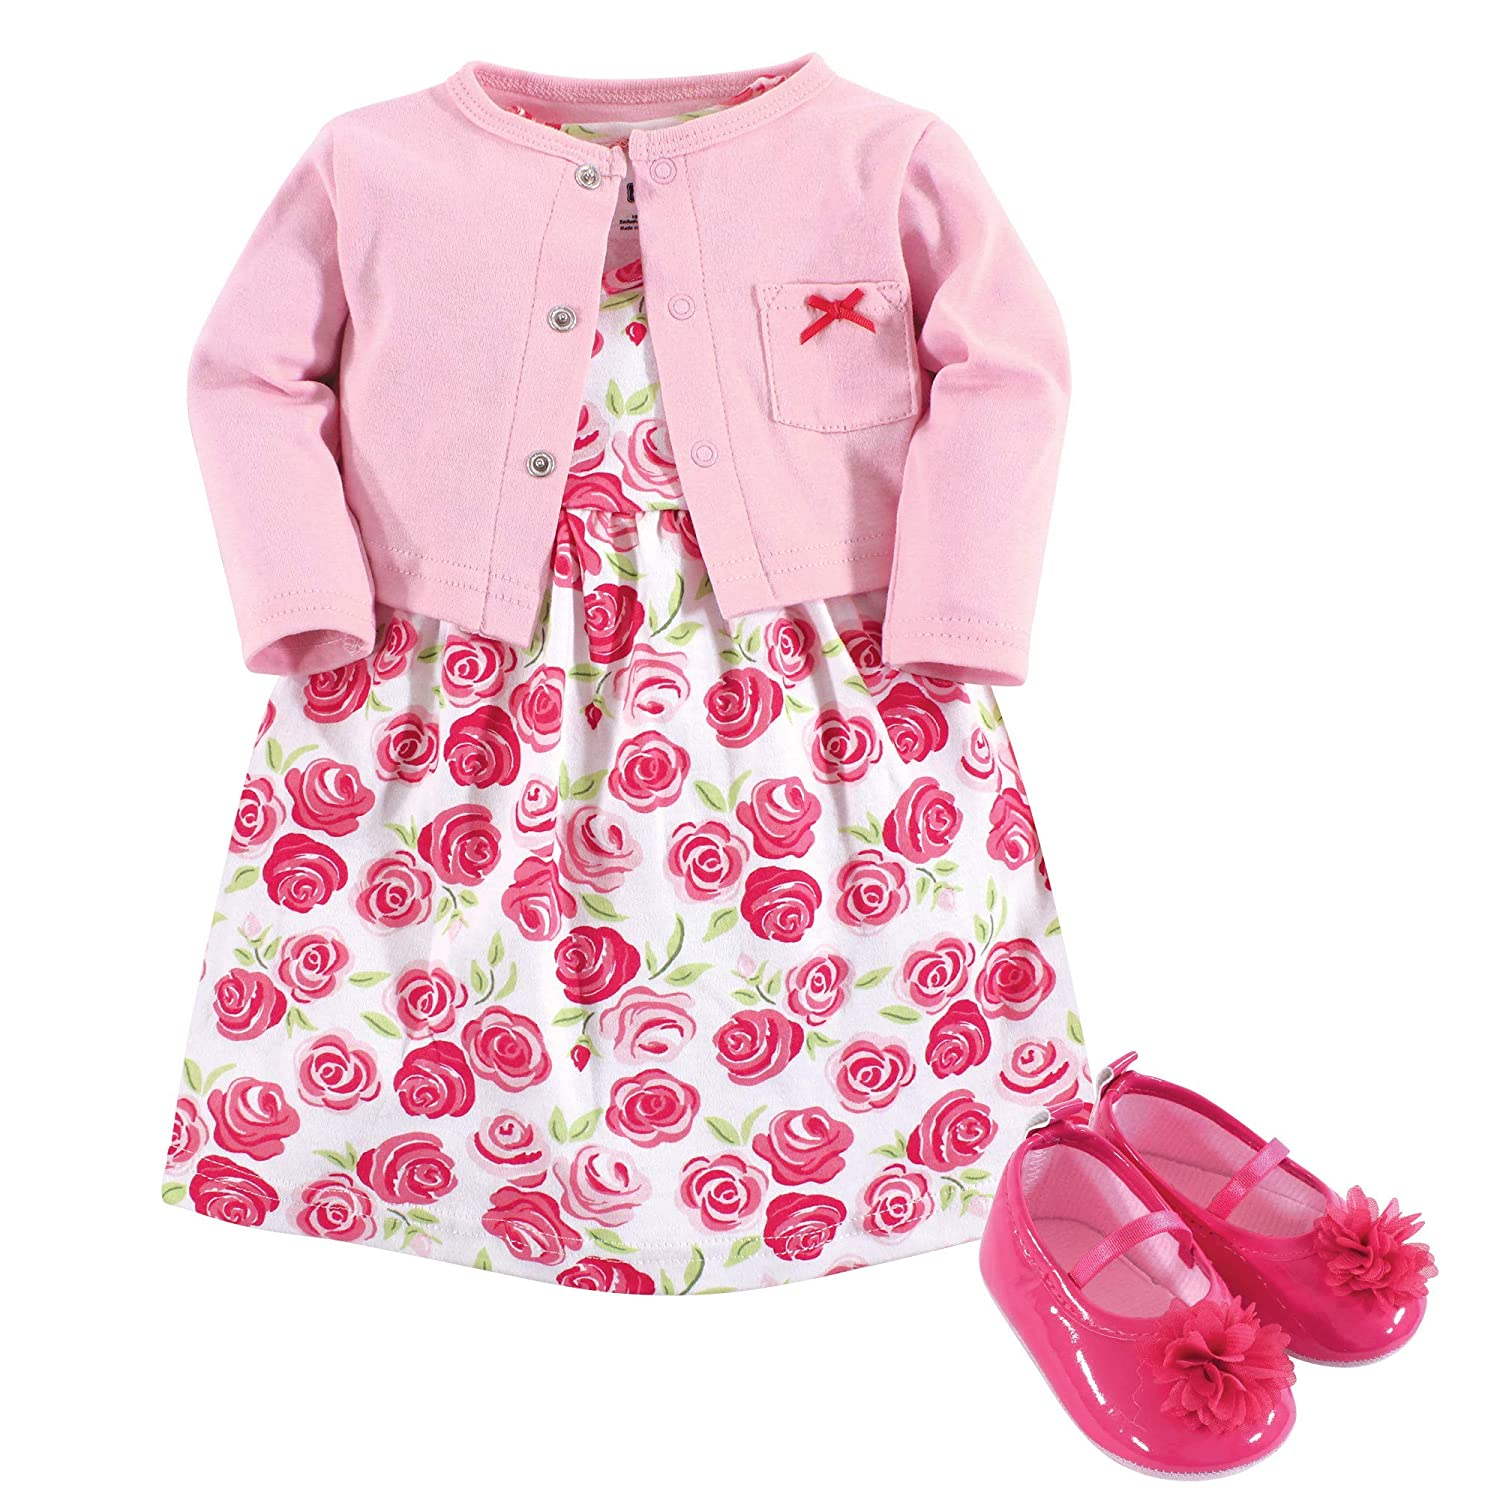 Hudson Baby Girl Dress Cardigan and Shoes